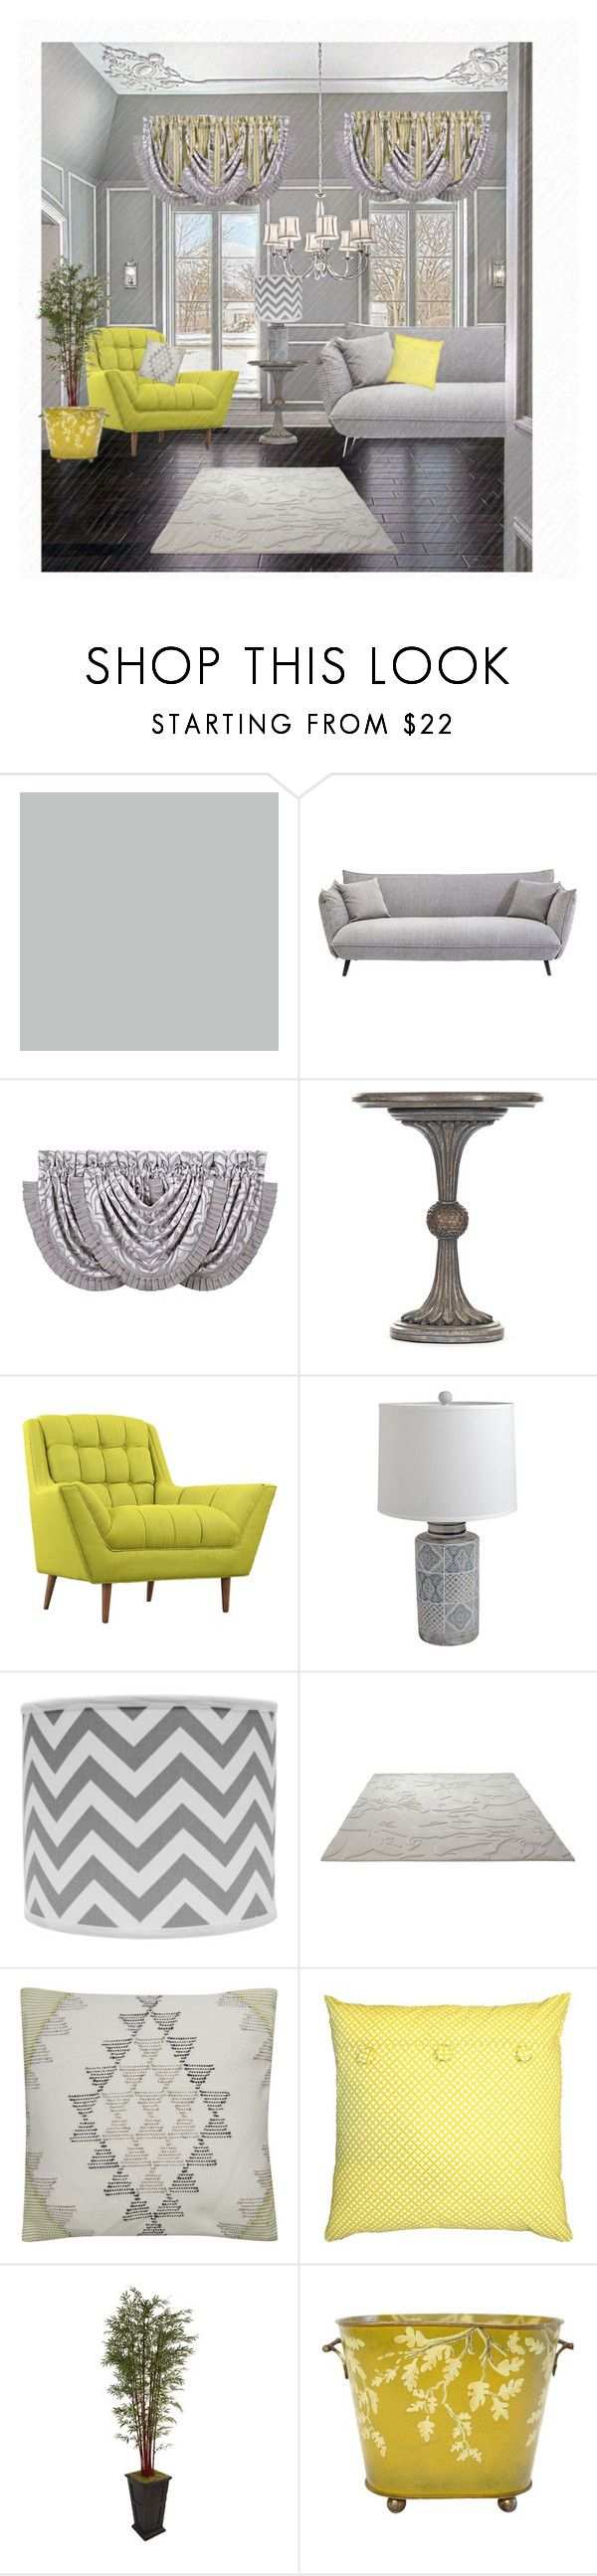 """""""Yellow and gray Decor"""" by barebear1965 ❤ liked on Polyvore featuring interior, interiors, interior design, home, home decor, interior decorating, J. Queen New York, LexMod, Pier 1 Imports and Universal Lighting and Decor"""